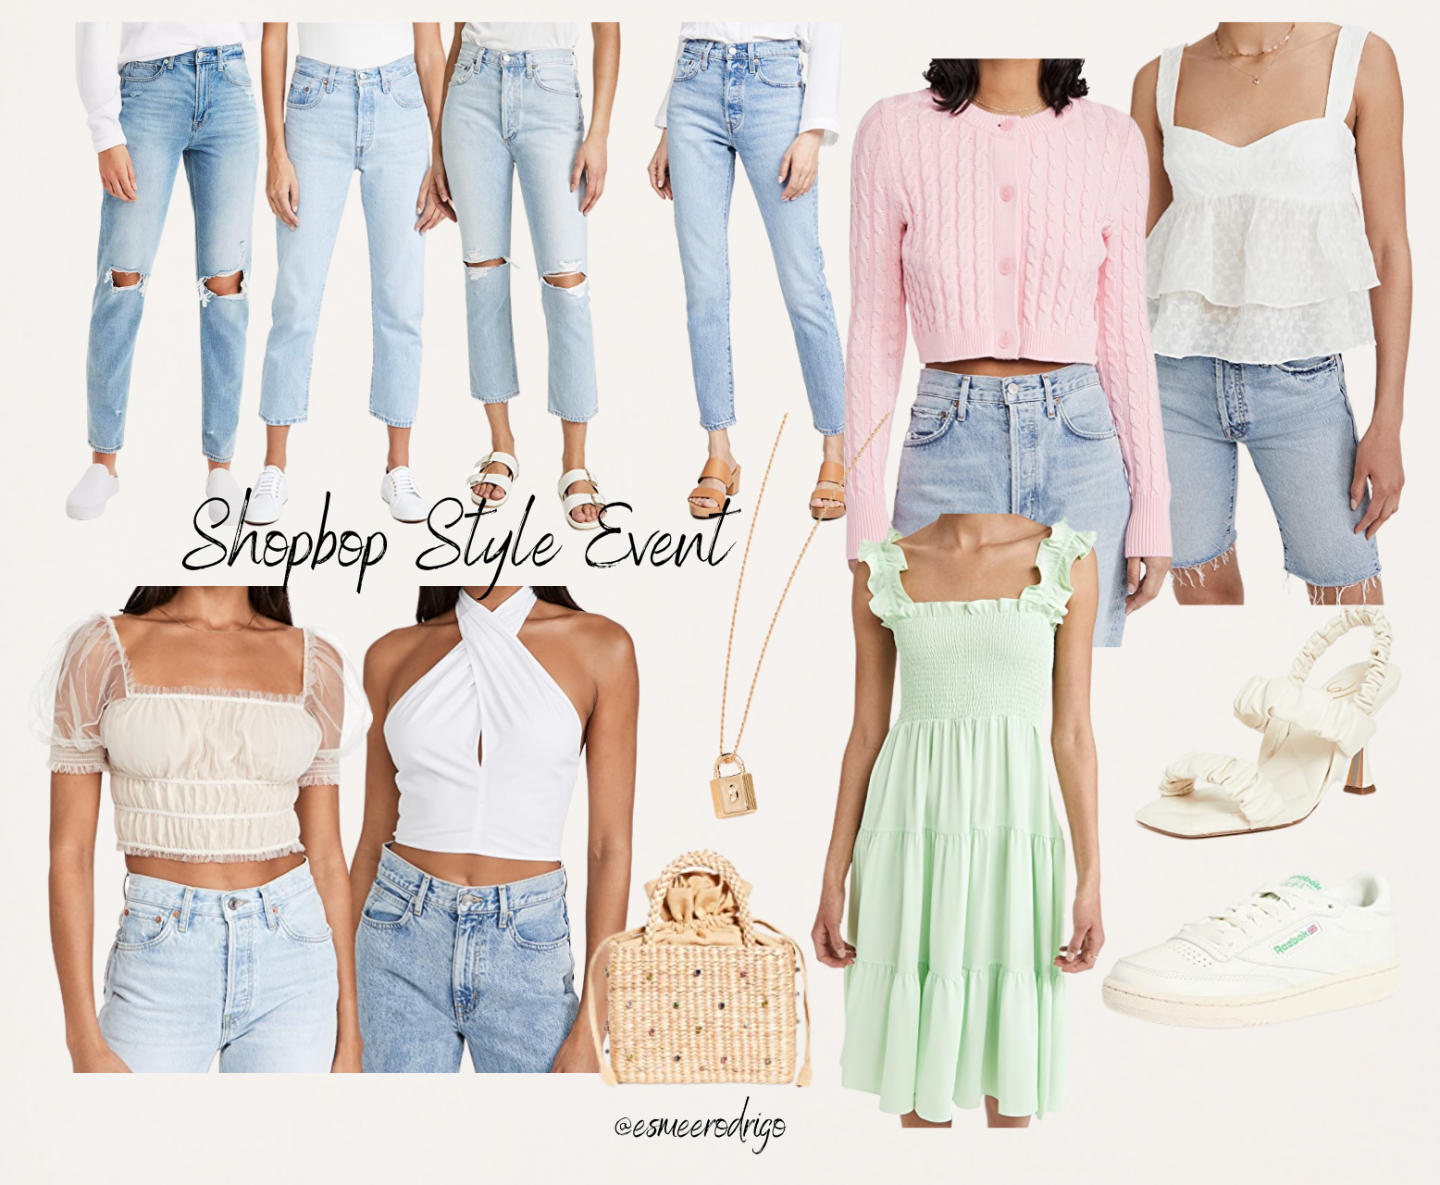 Shopbop Spring Style Event